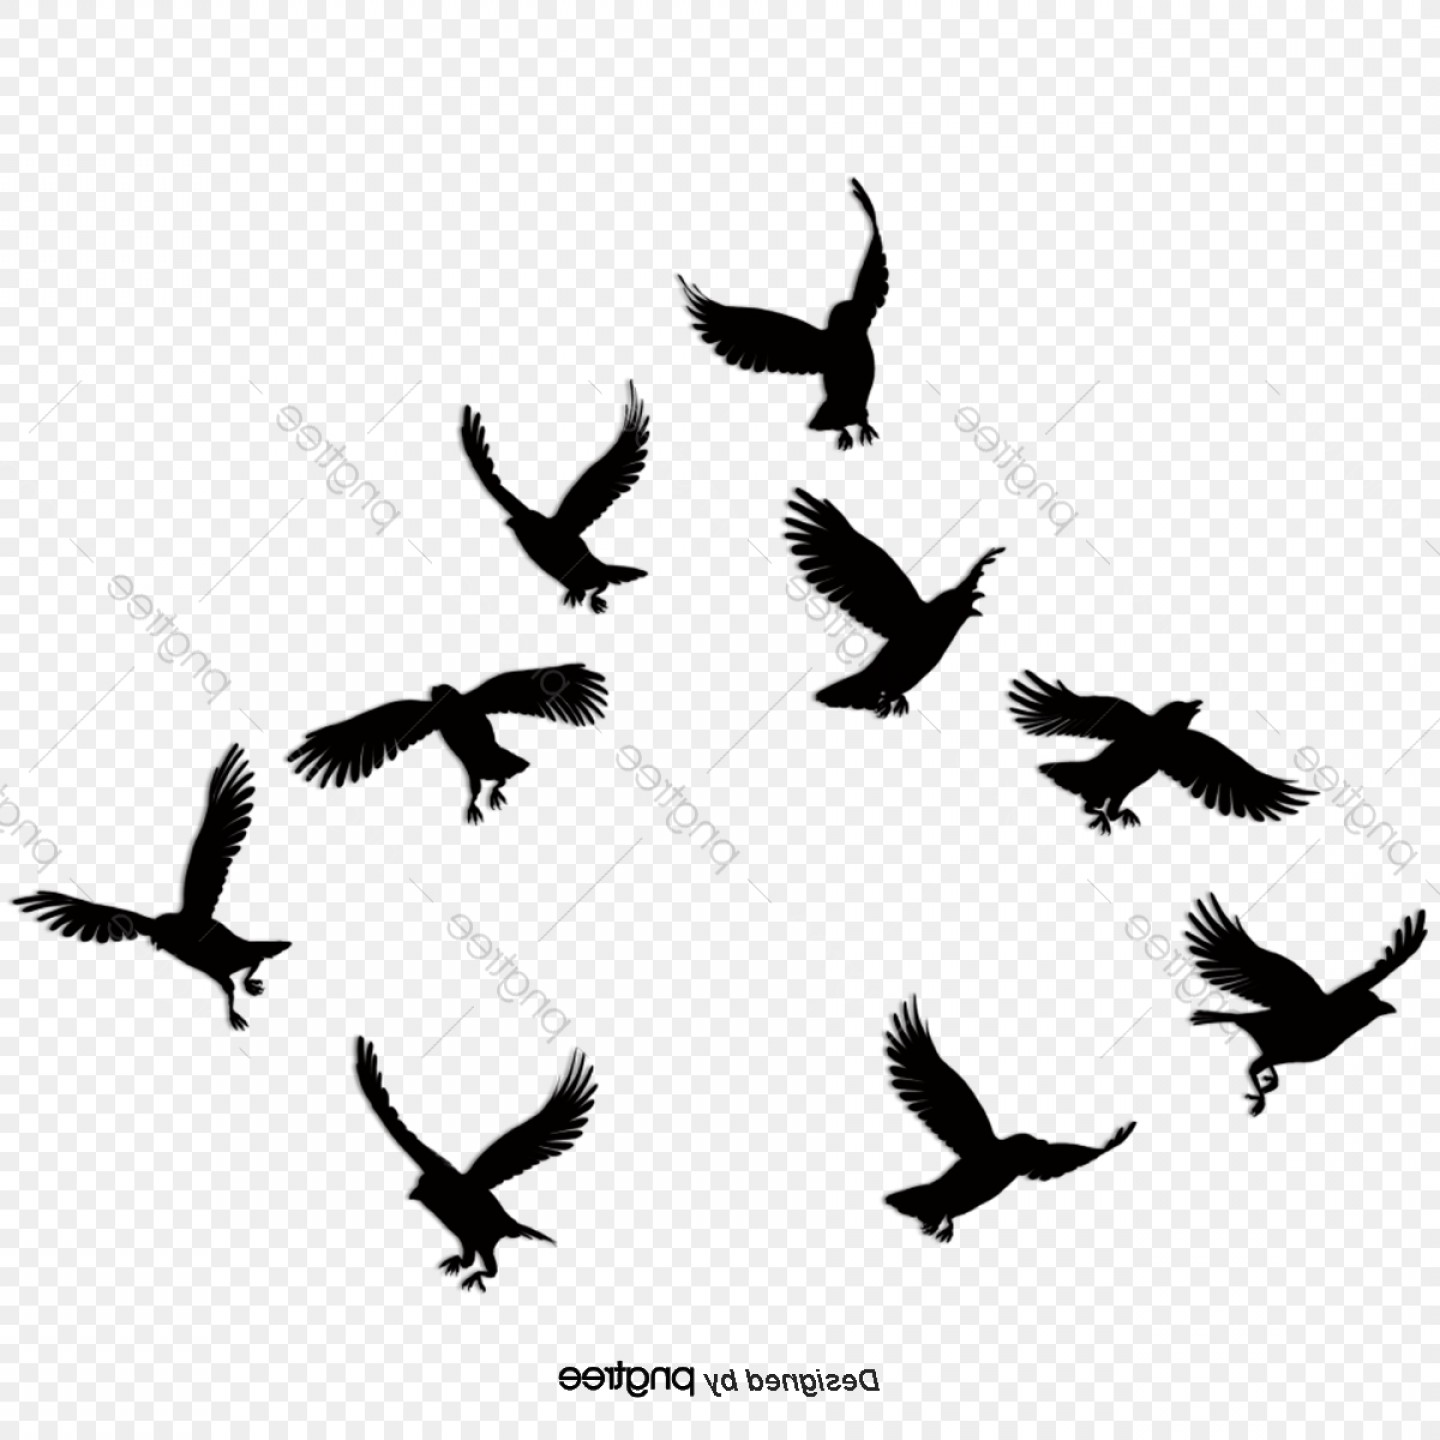 Black Vector Birds Simple Birds Black Birds Silhouette.